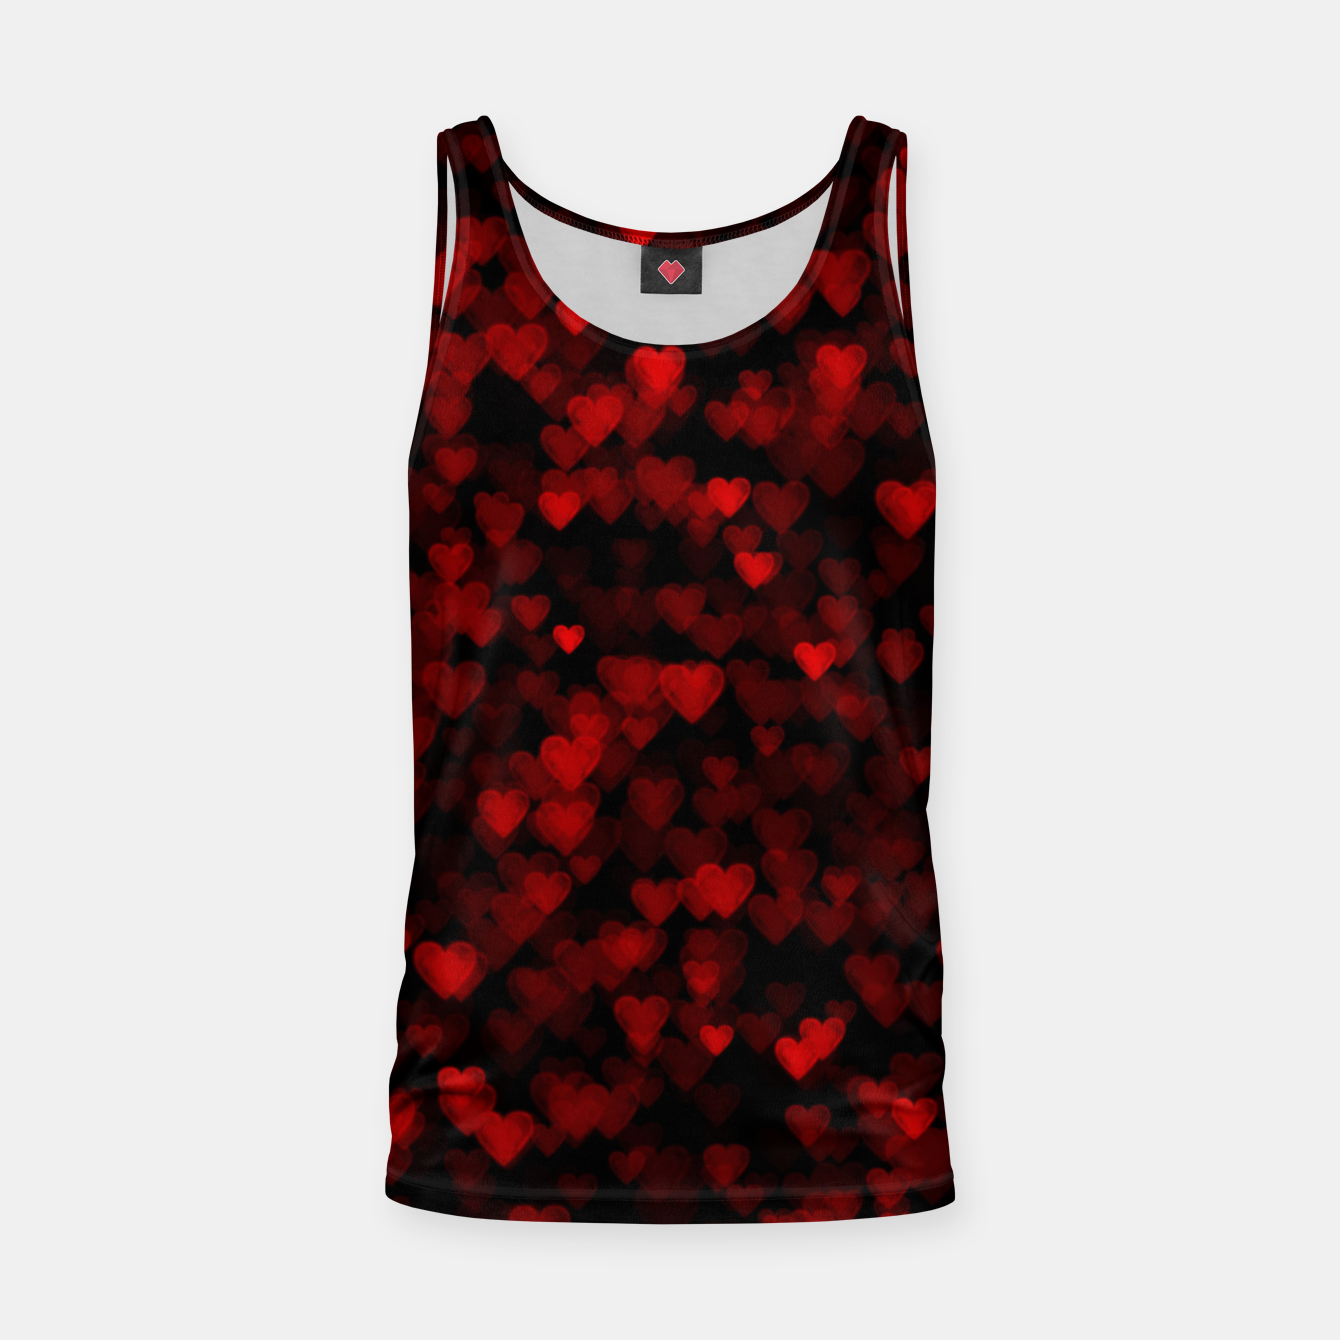 Foto Red Hearts Blurry Vision Dark Black Romantic Love Tank Top - Live Heroes